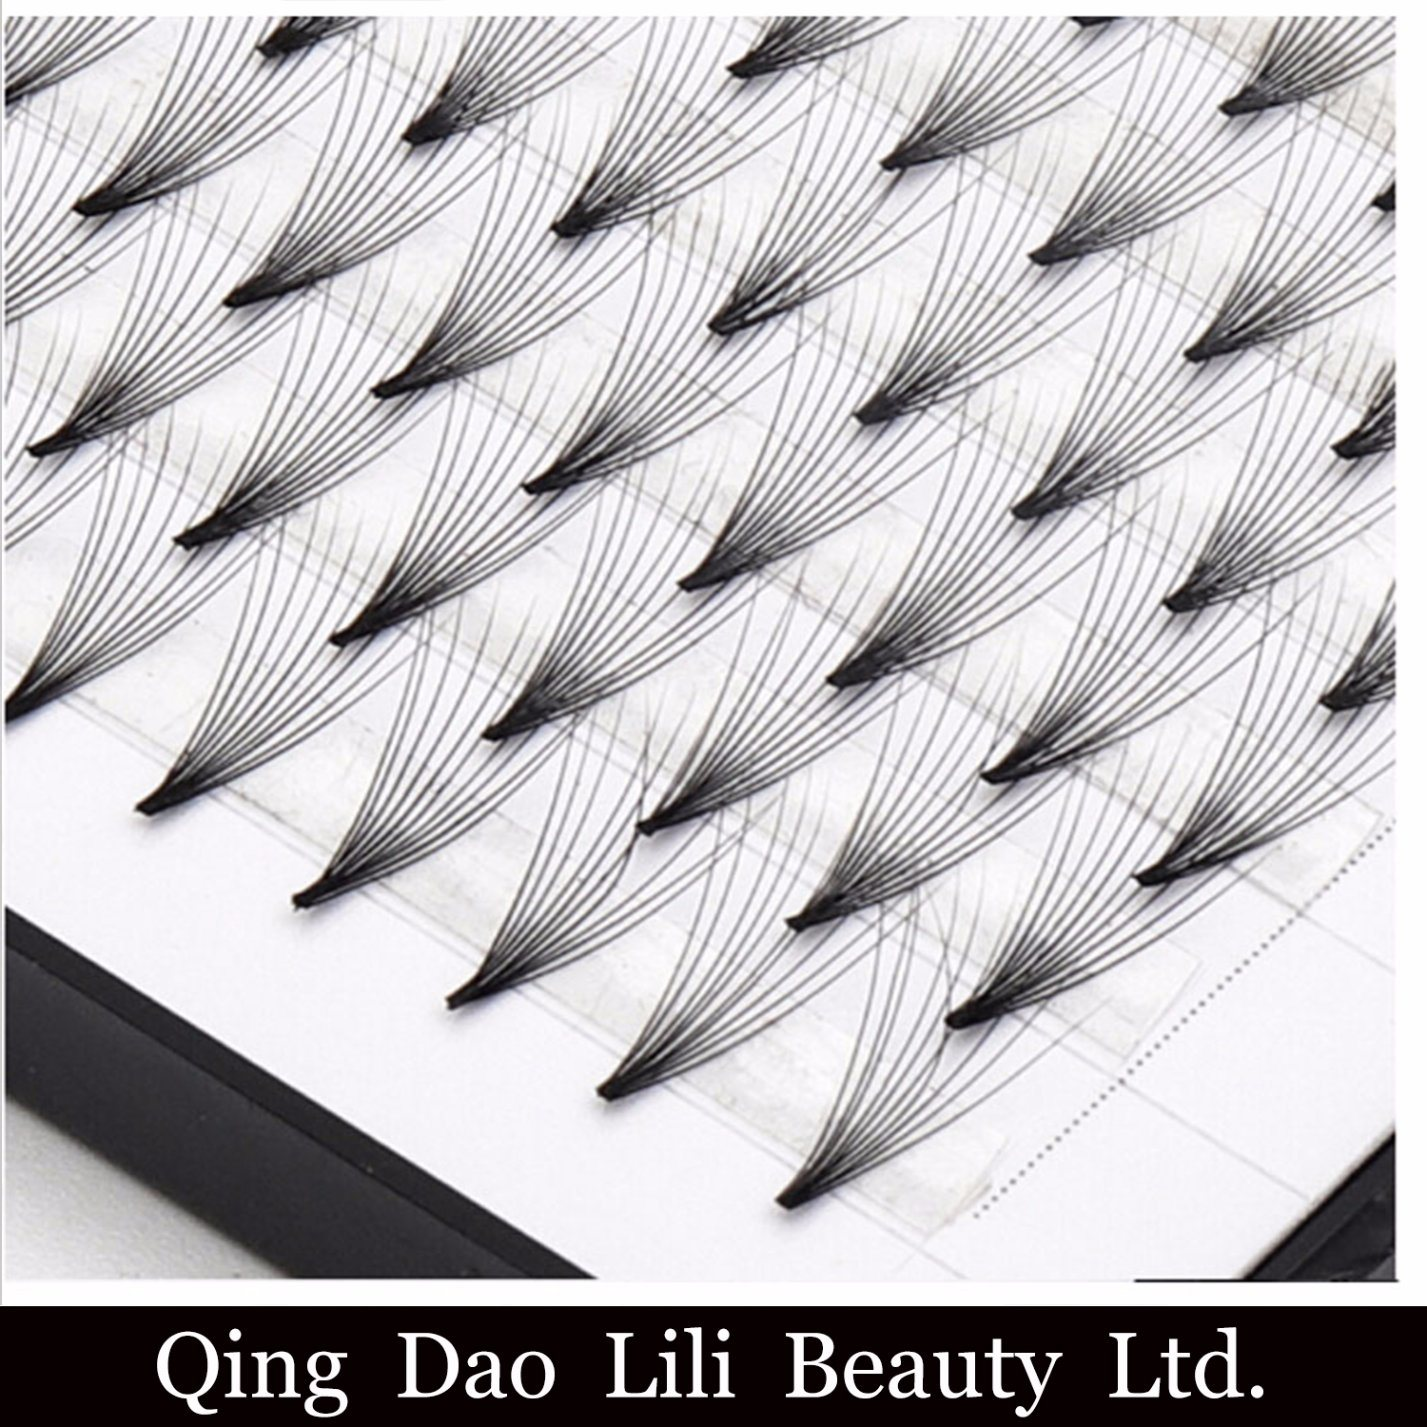 China 0 10mm 0 07mm Premade Volume Lashes Fans Individual 3D